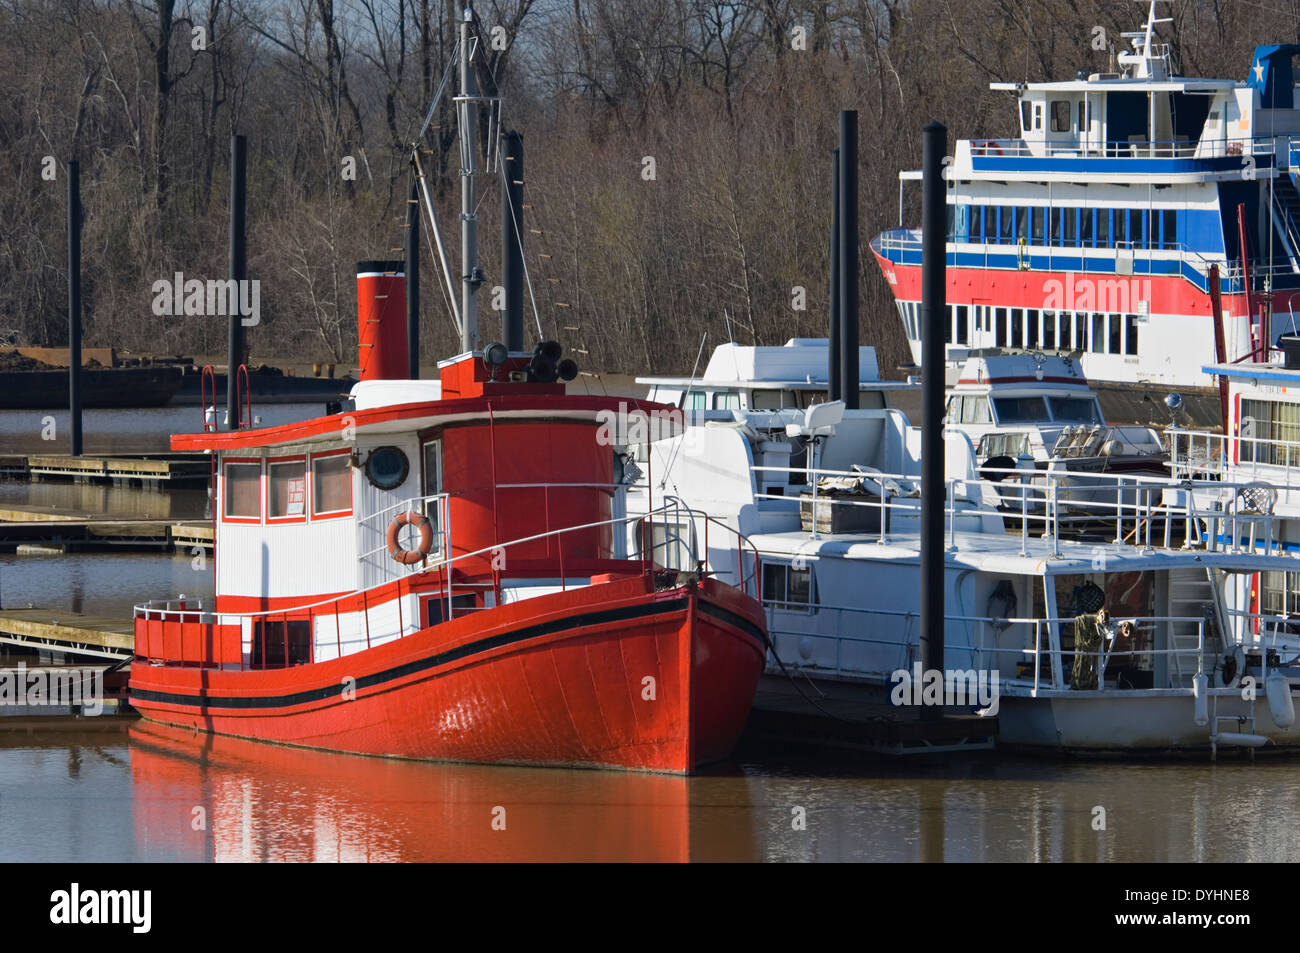 Tug Boat and its Reflection Reflection on the Ohio River in Utica, Indiana - Stock Image